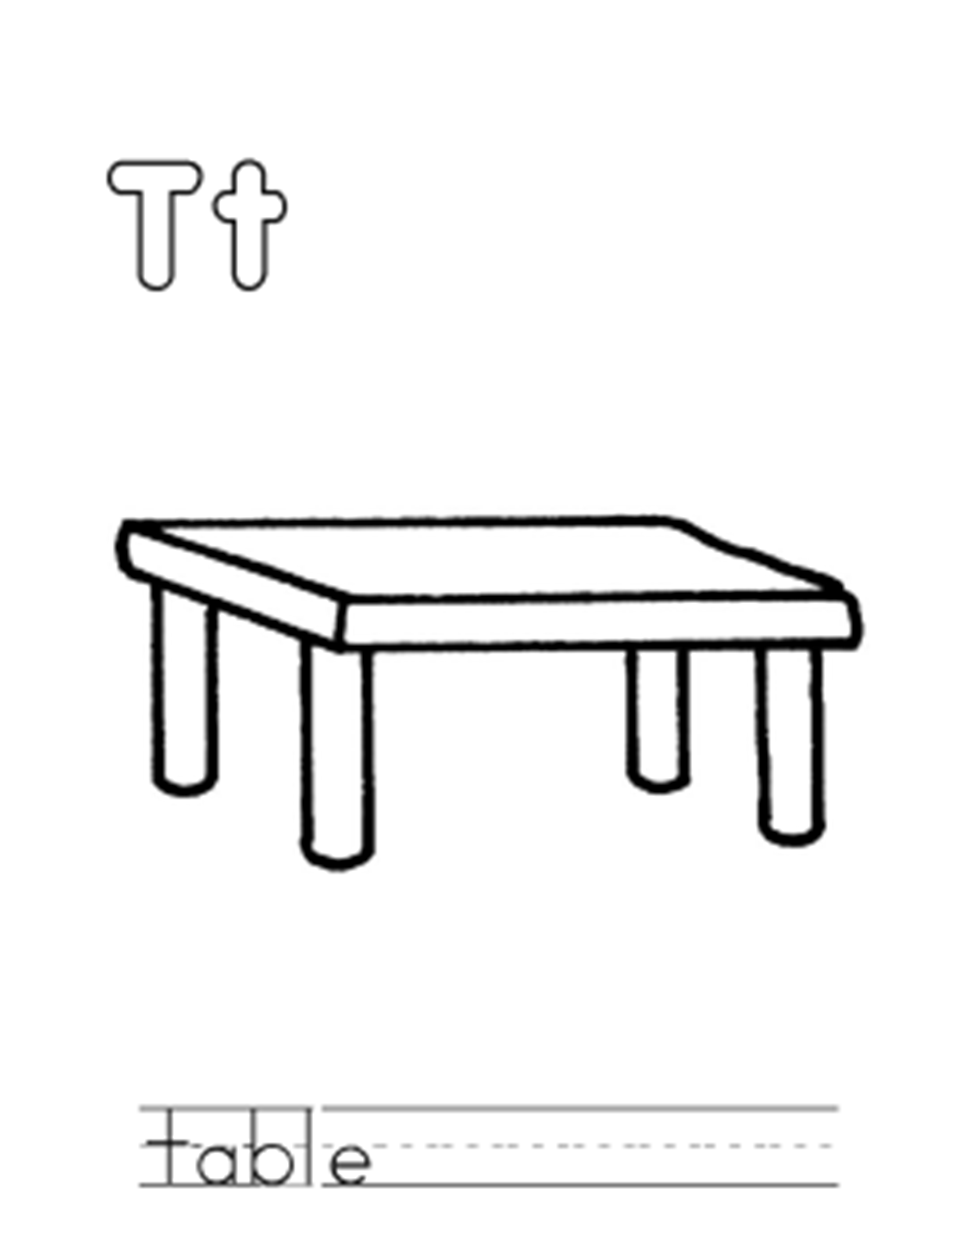 tables coloring pages - photo #22